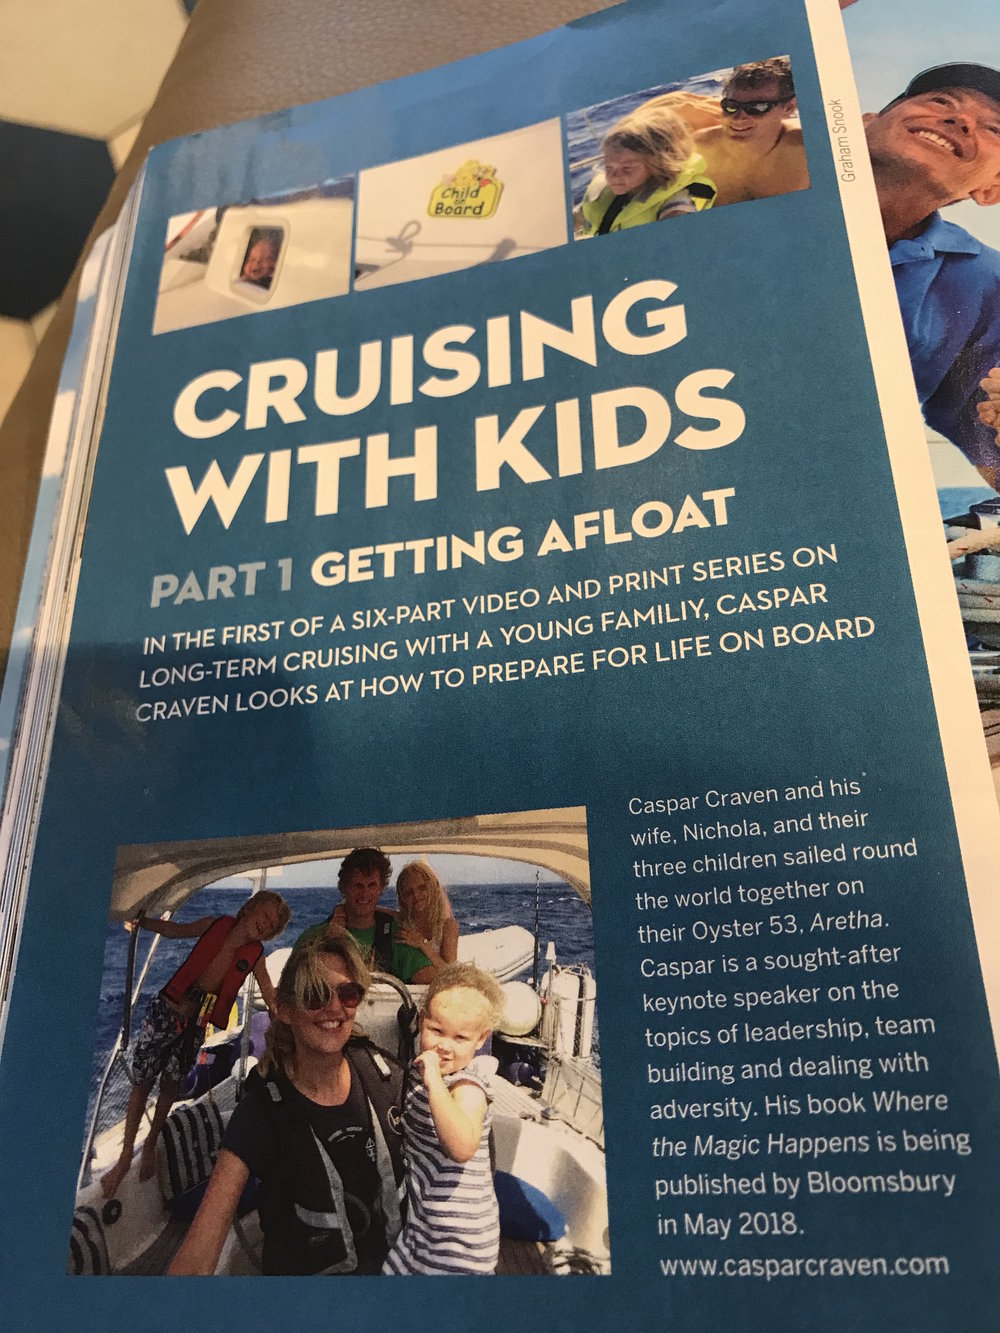 December 2017 - Caspar has written a 6 part series for Yachting World Magazine 0n Family Sailing - to watch the Yachting World videos that accompany the magazine articles,  go here.